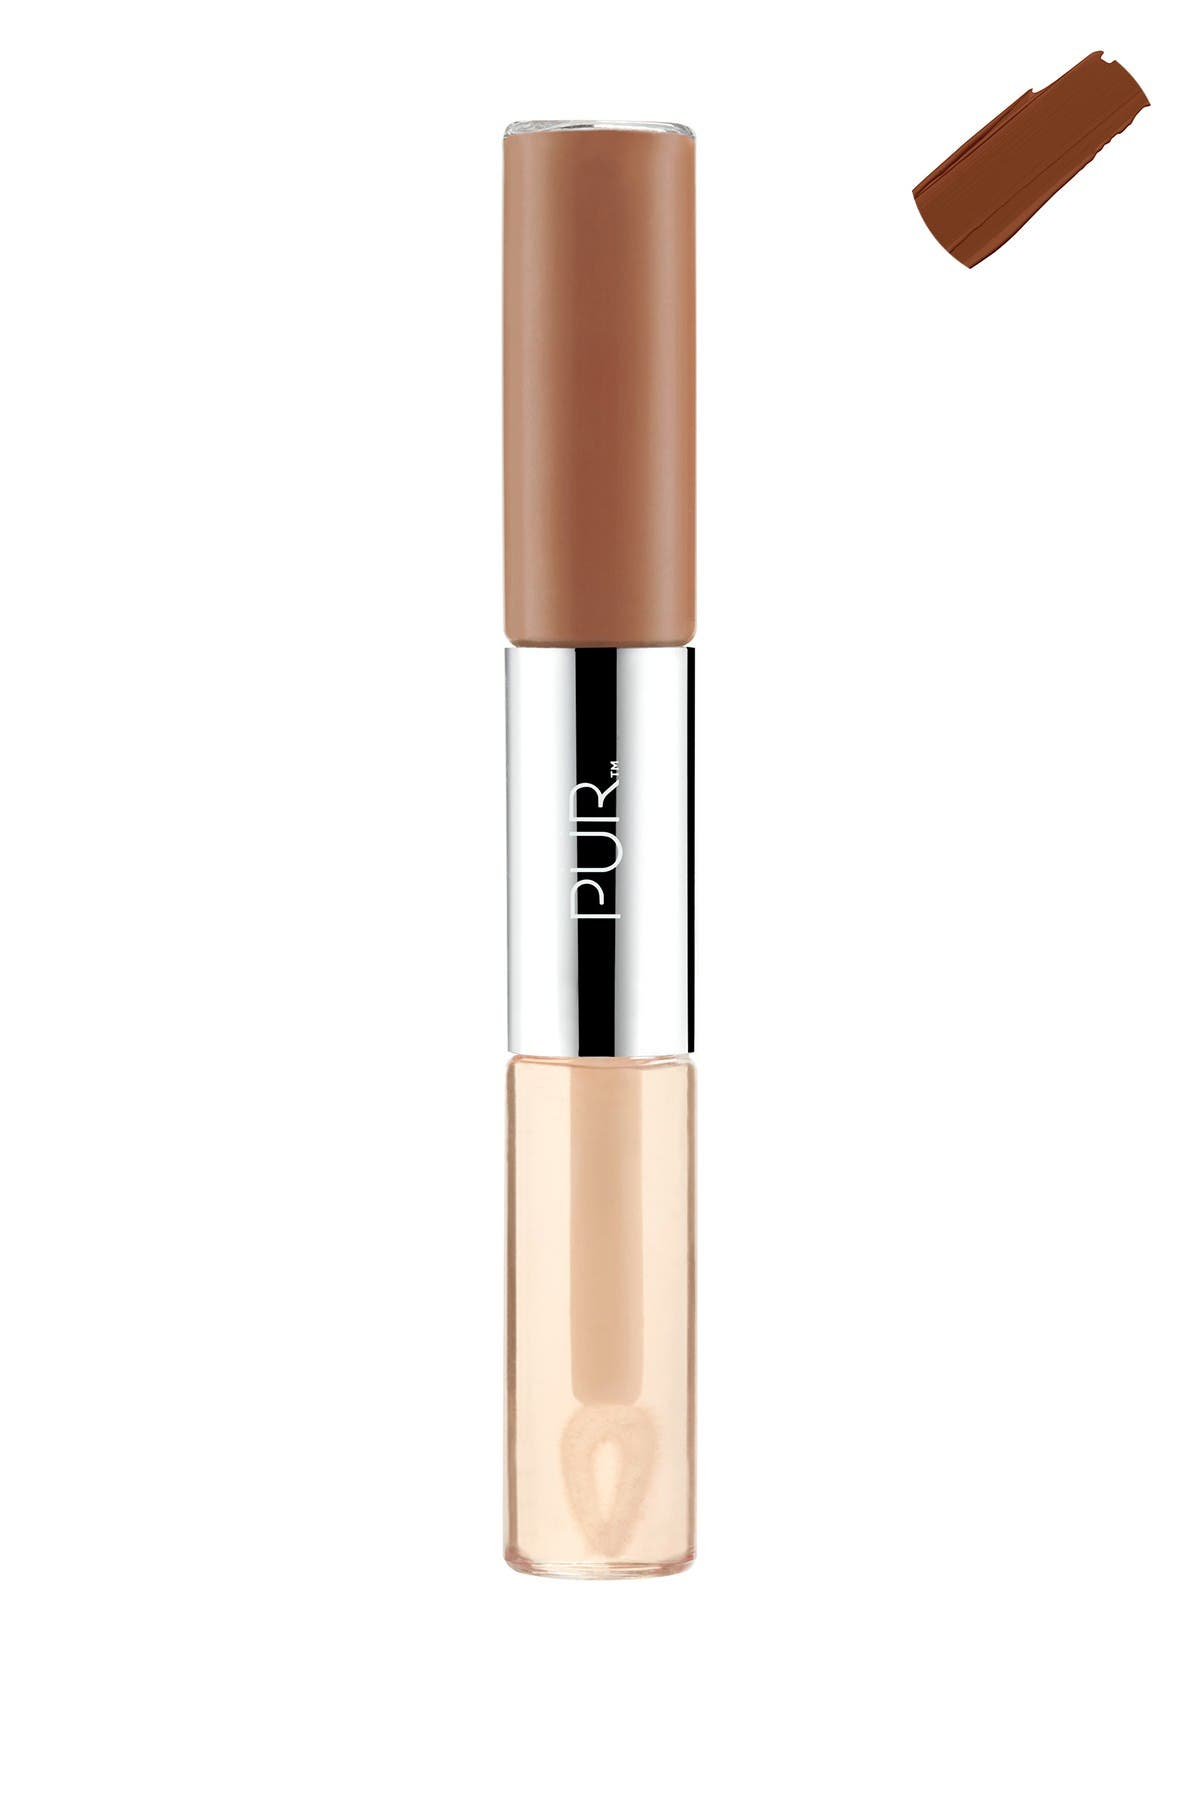 Image of PUR Cosmetics 4-in-1 Lip Duo - Duet